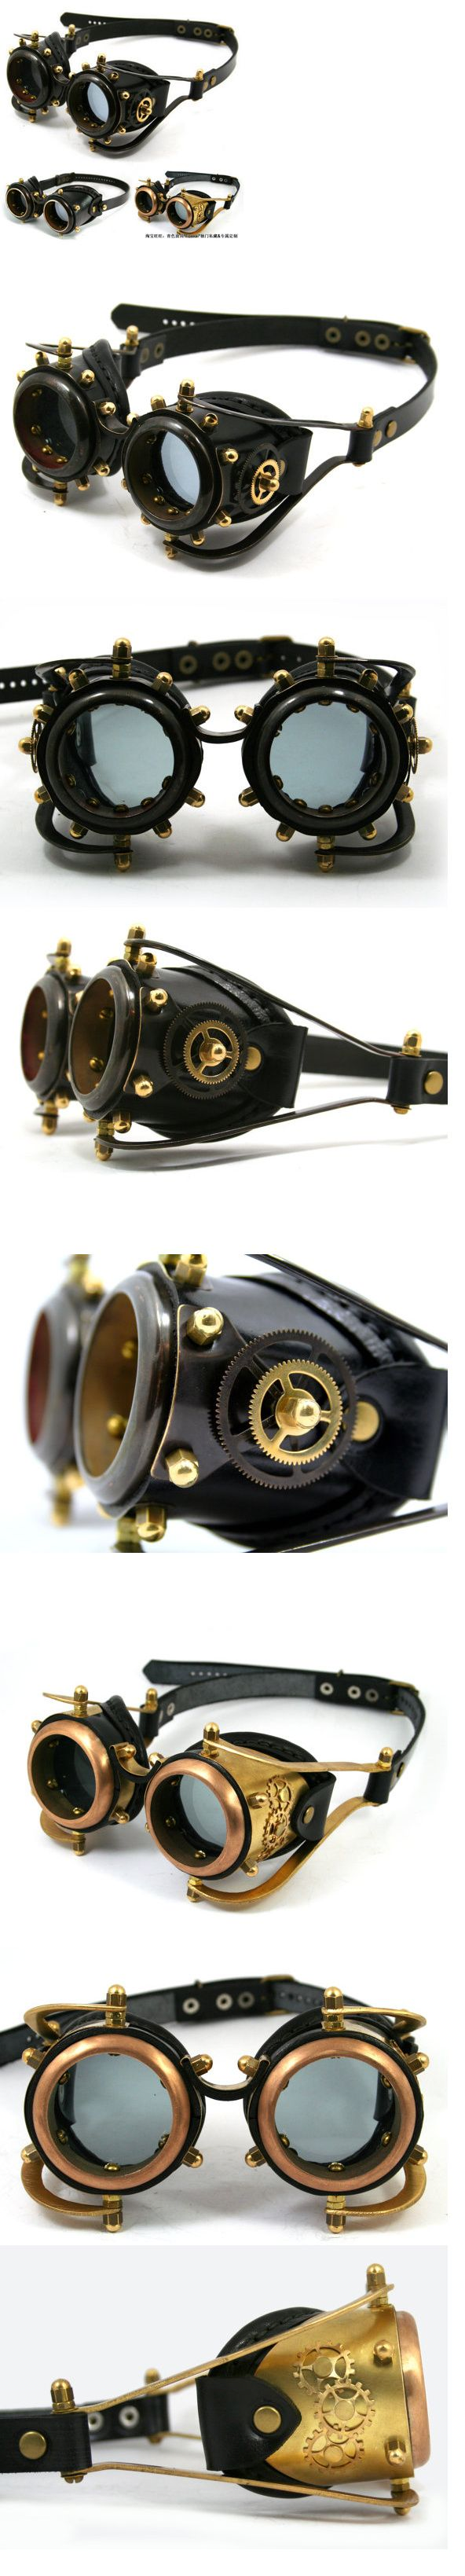 newreal采集到CG(6628图)_花瓣插画 https://www.steampunkartifacts.com/collections/steampunk-glasses